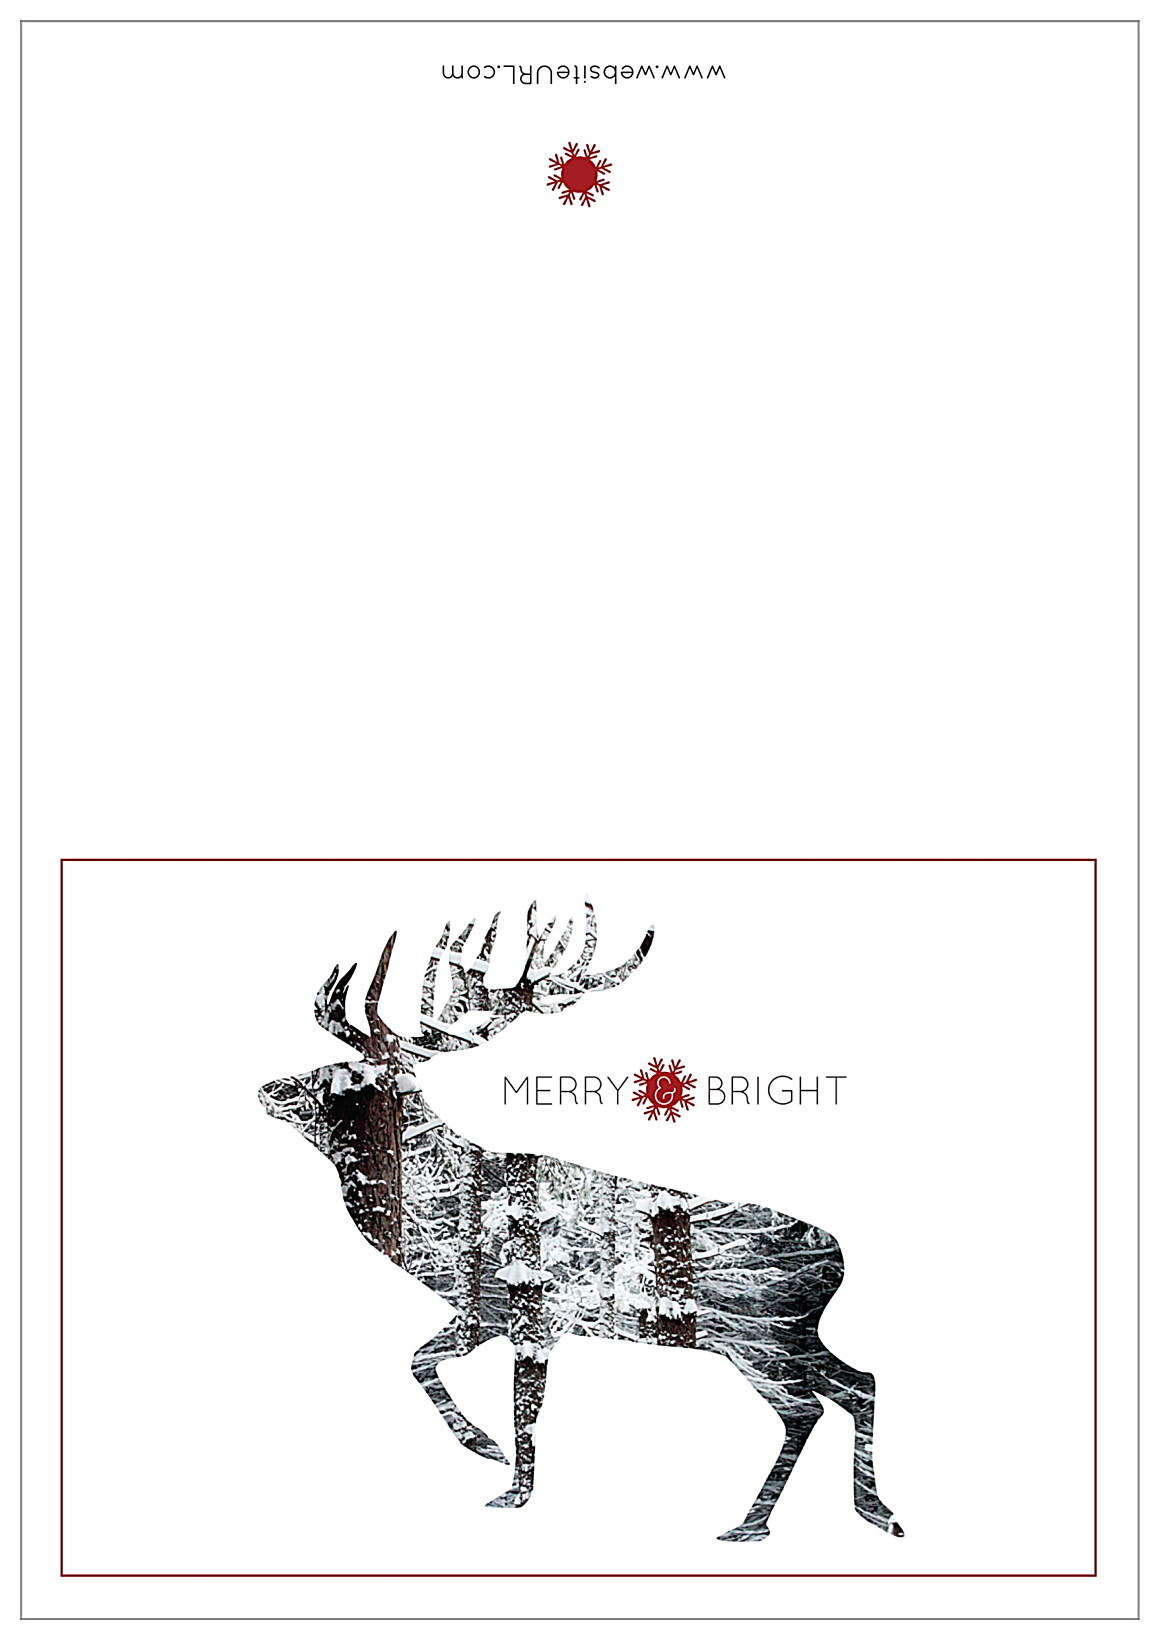 Snowy Reindeer front - Greeting Cards Maker